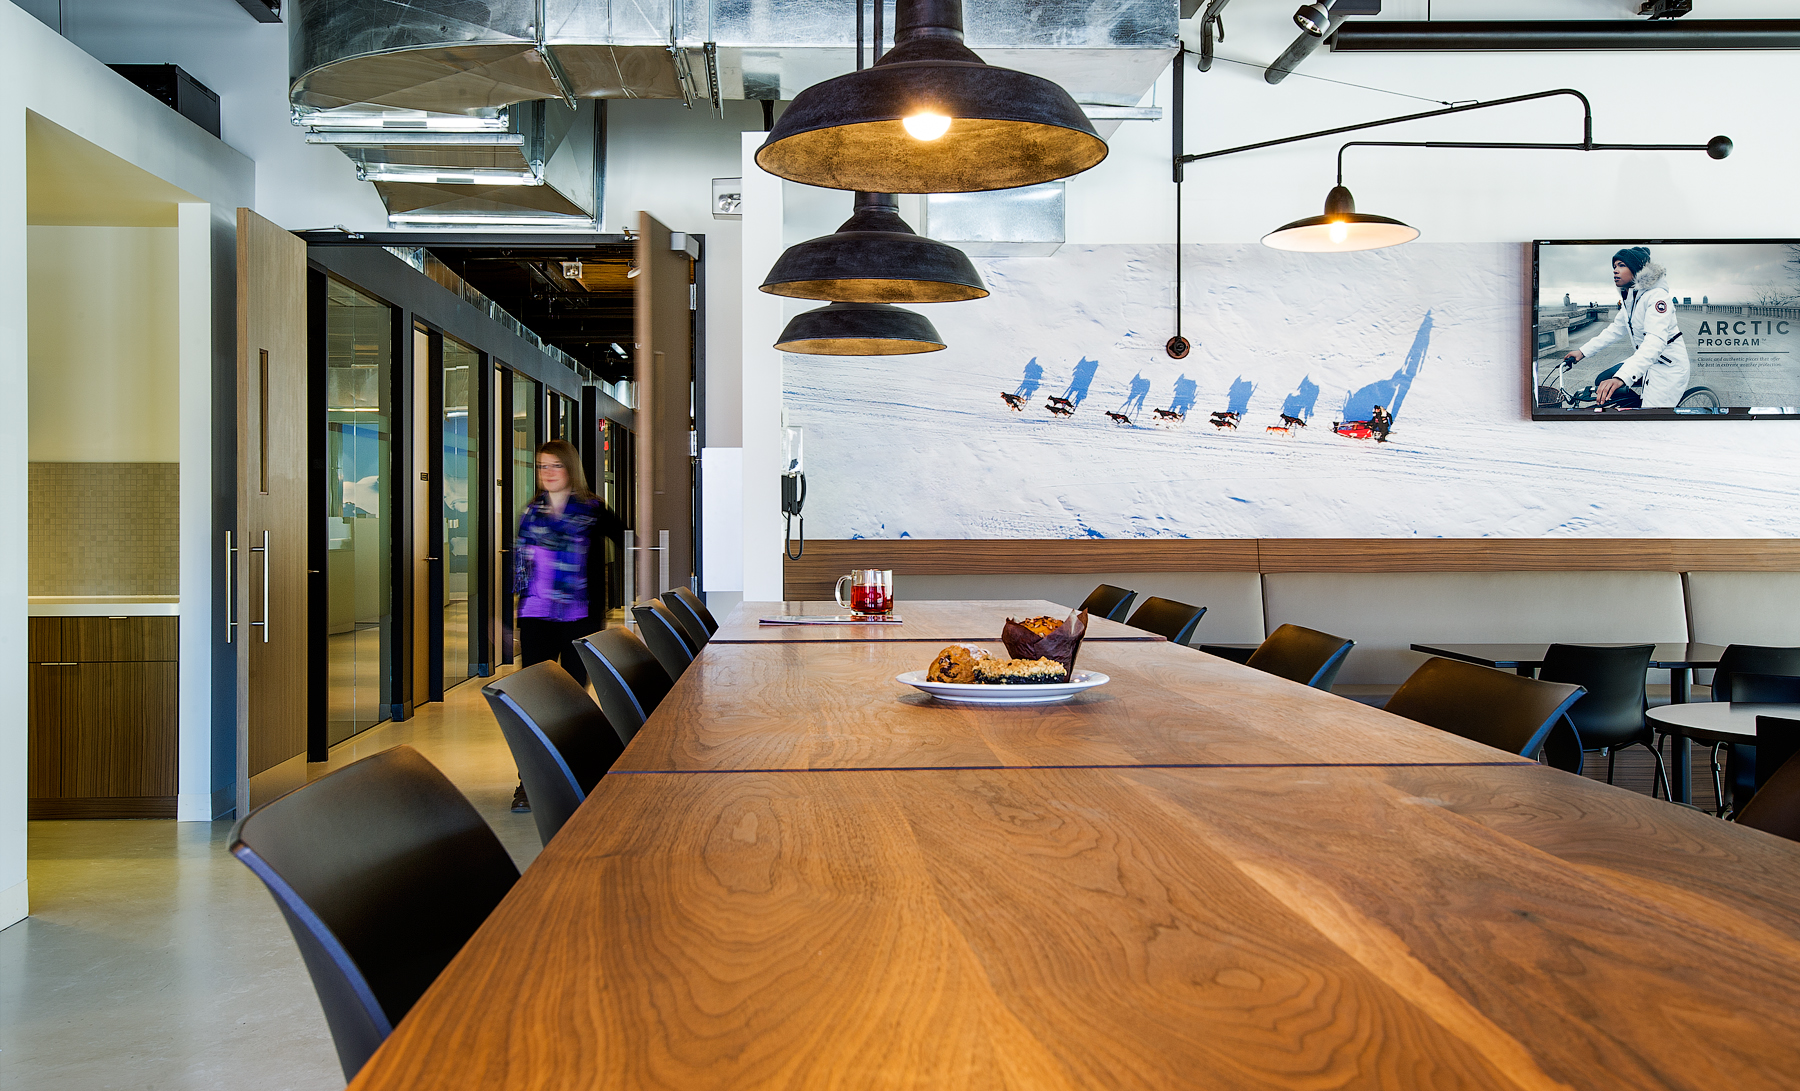 Canada Goose meeting space with long wood table, industrial lights, and white walls with winter-themed graphics